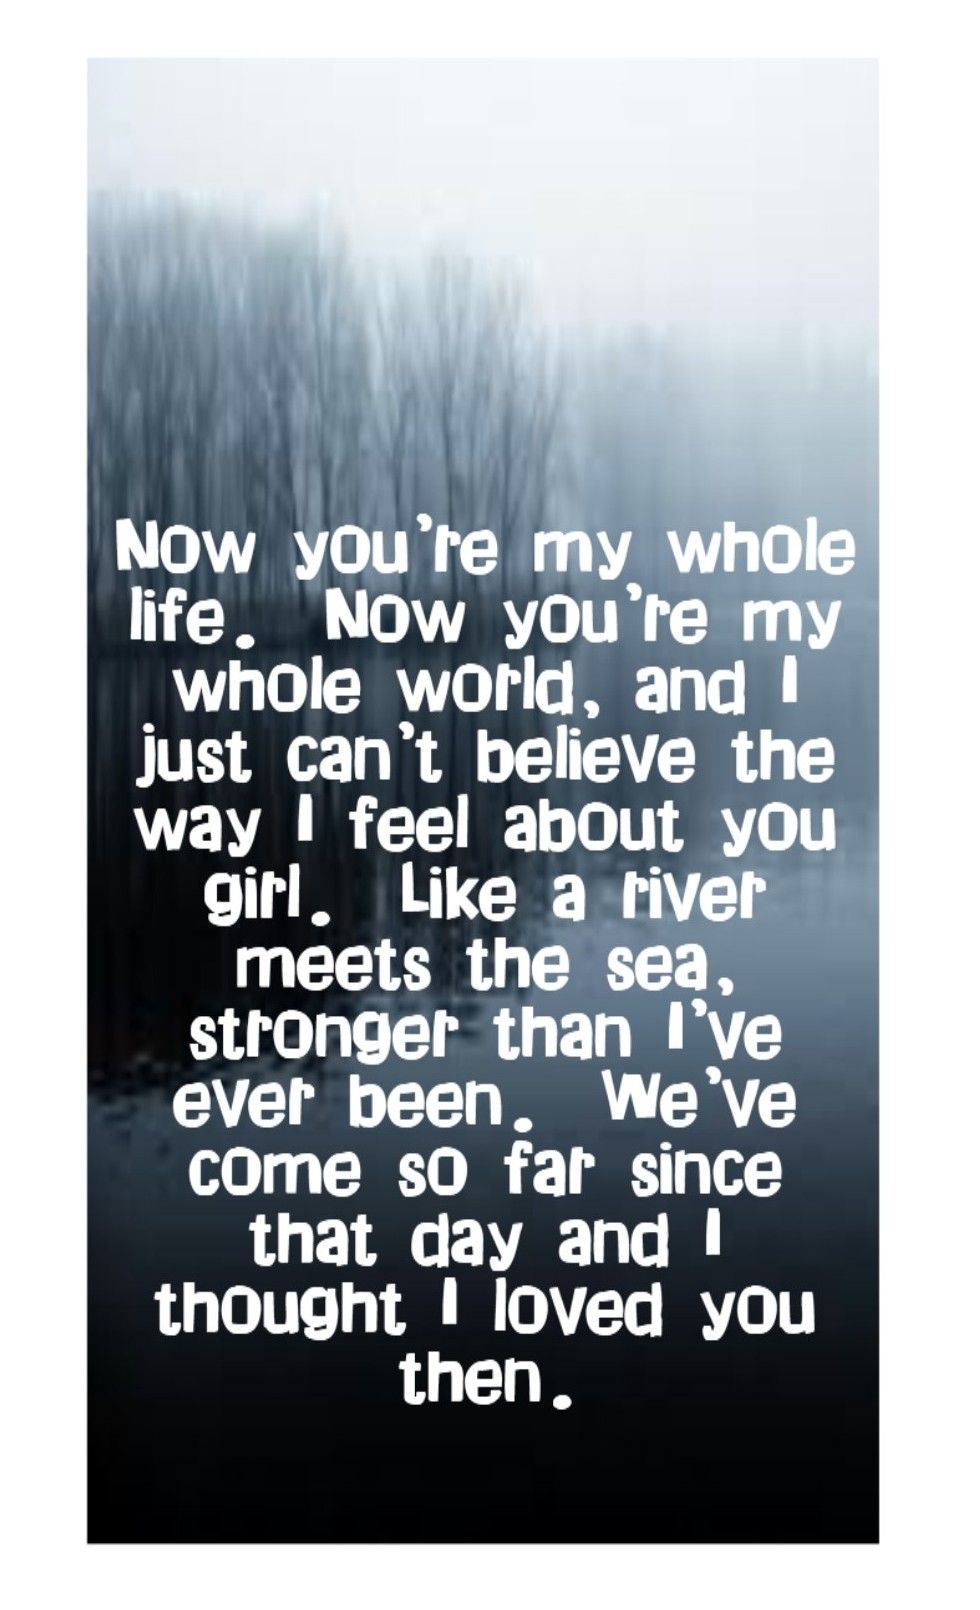 Loved You Then Brad Paisley Country Lyrics Lyrics Country